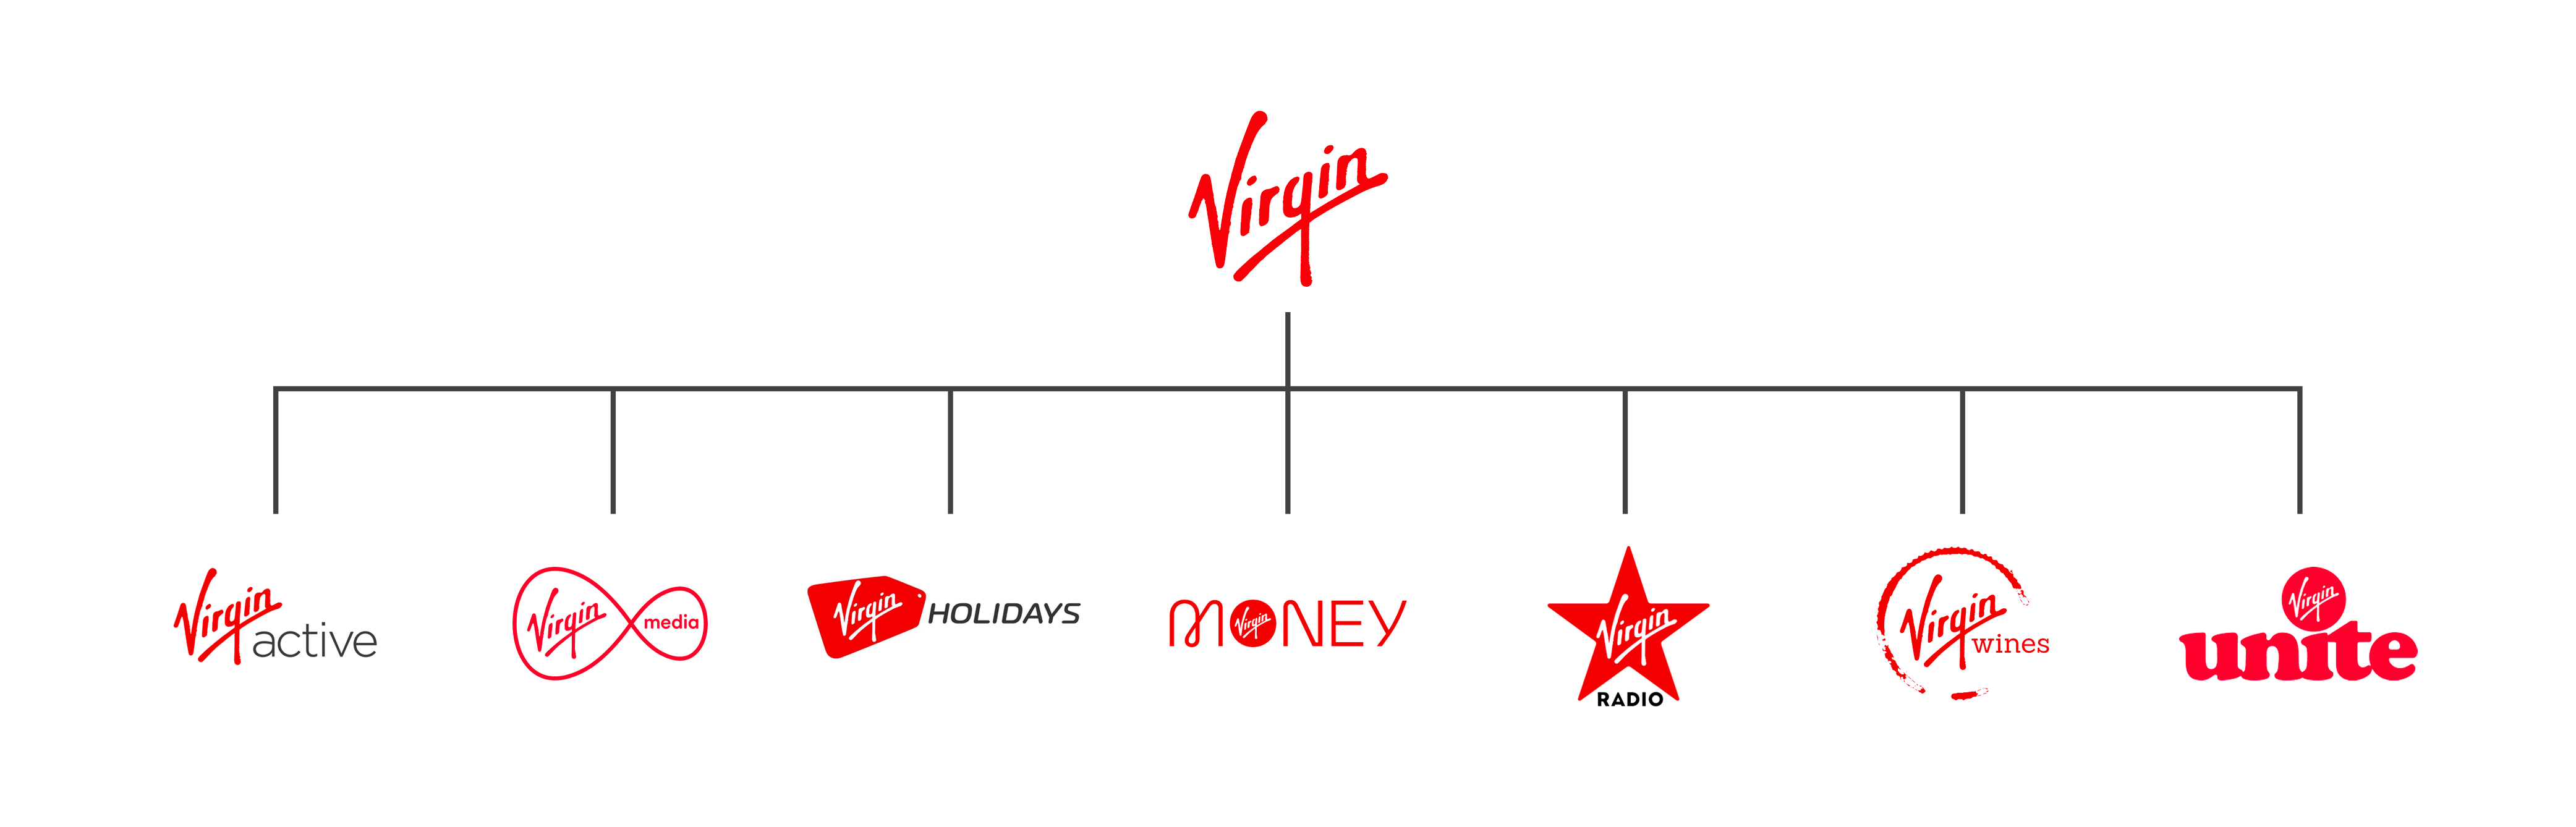 A picture showing Virgin's different brands